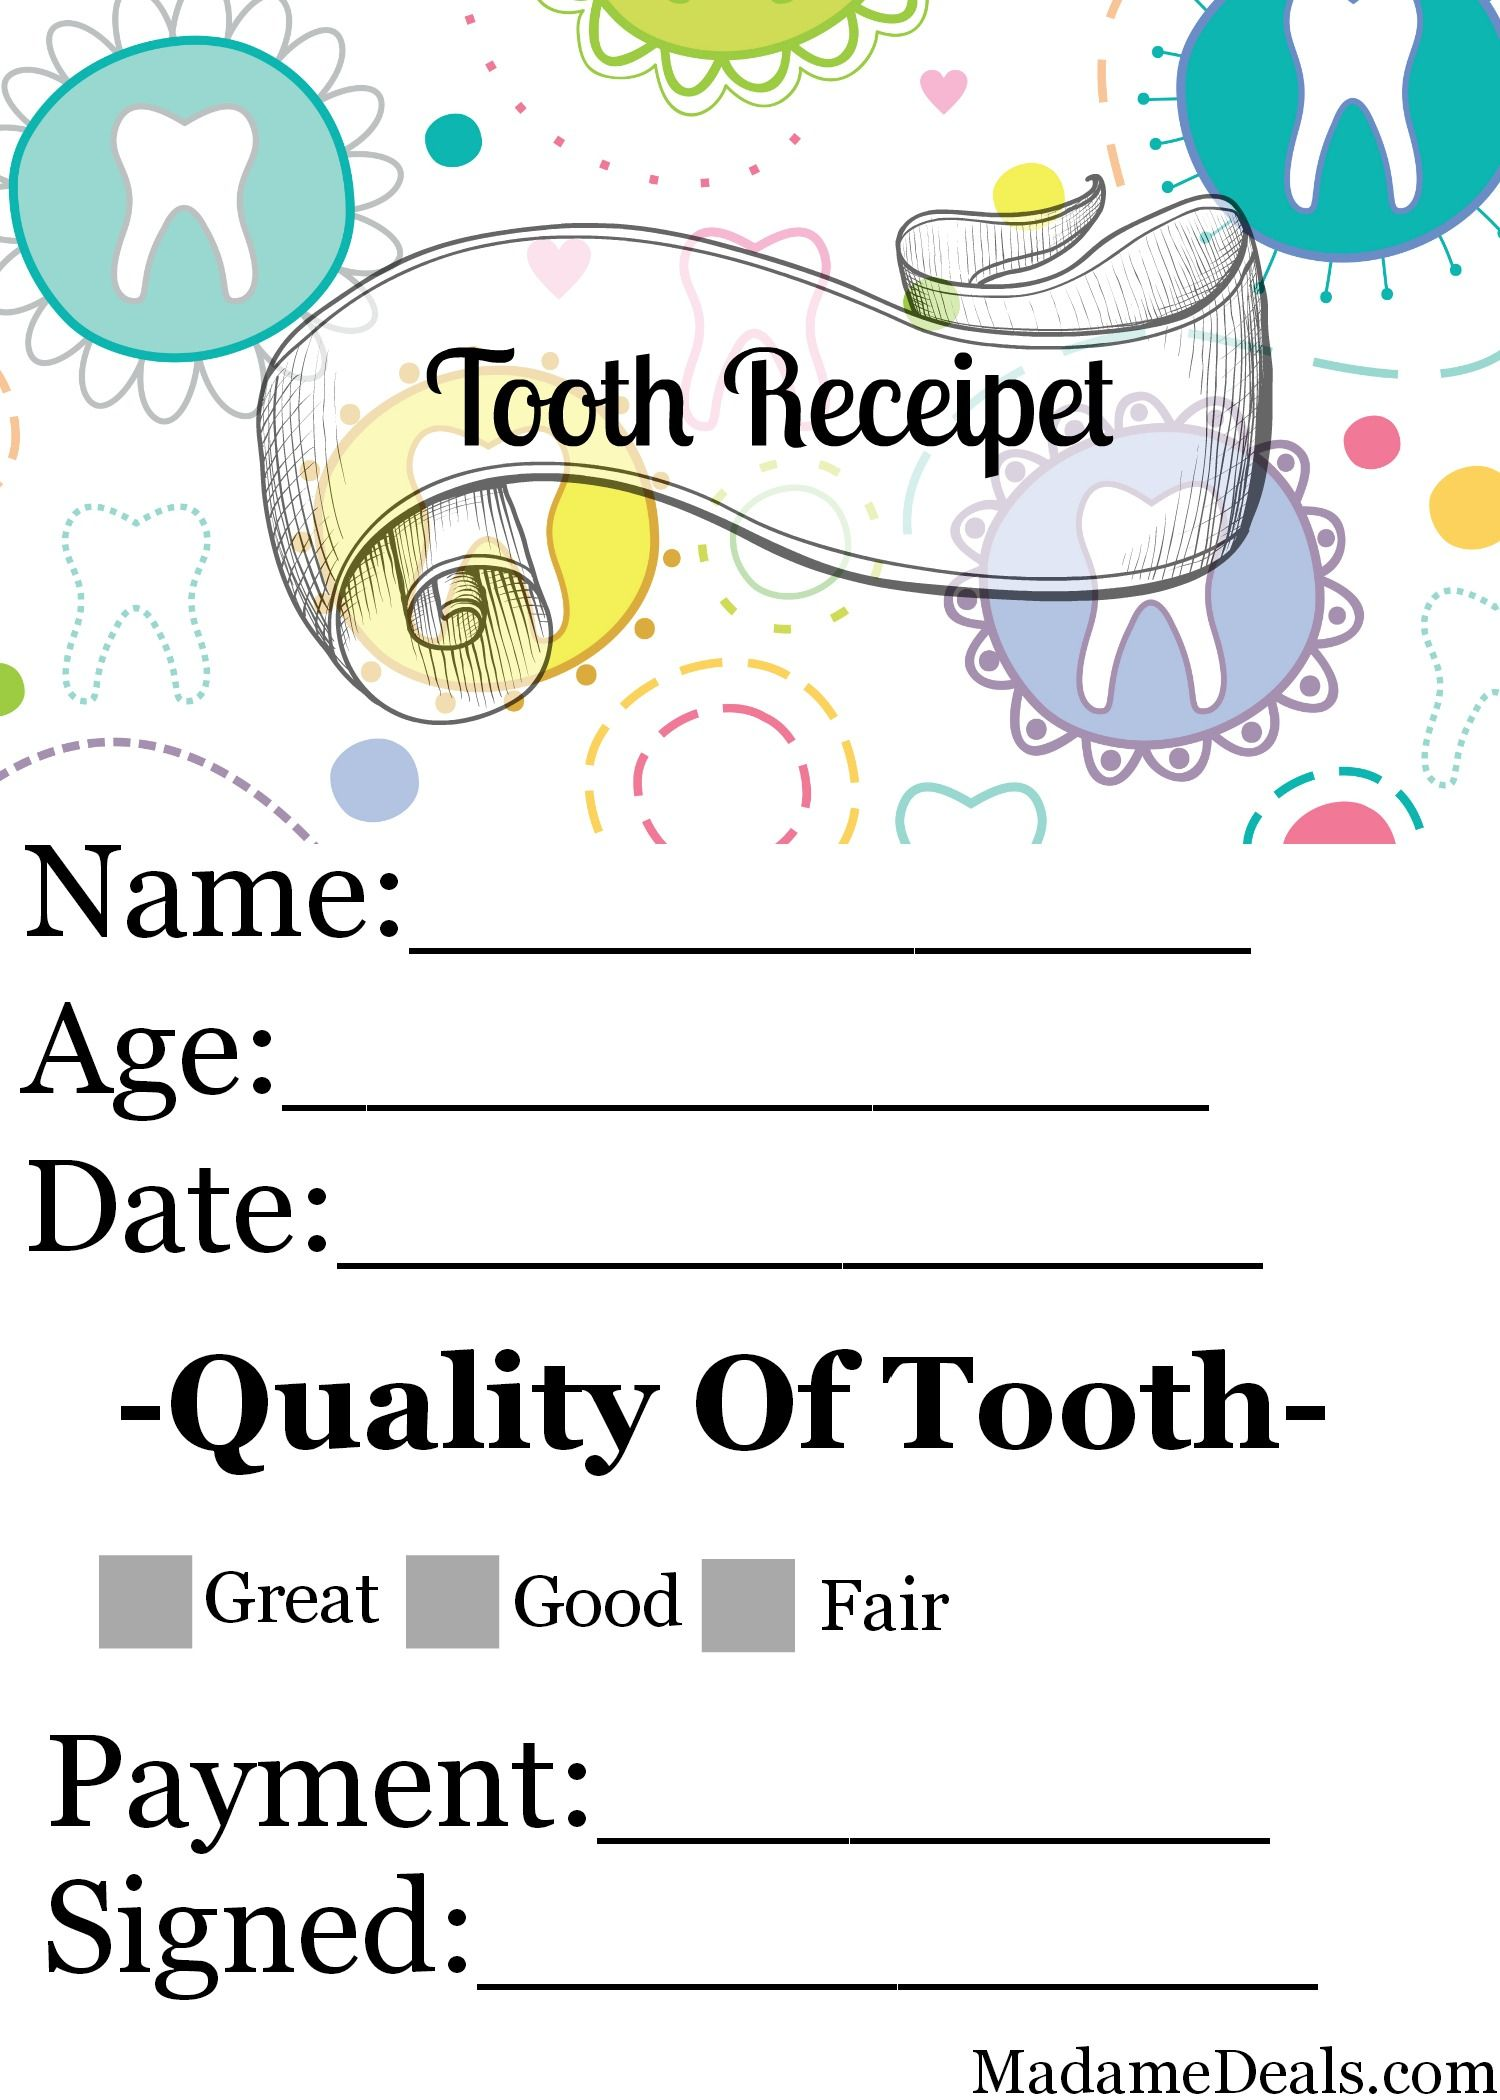 Diy Crafts Archives Page 7 Of 75 Real Advice Gal Tooth Fairy Letter Template Tooth Fairy Letter Tooth Fairy Certificate